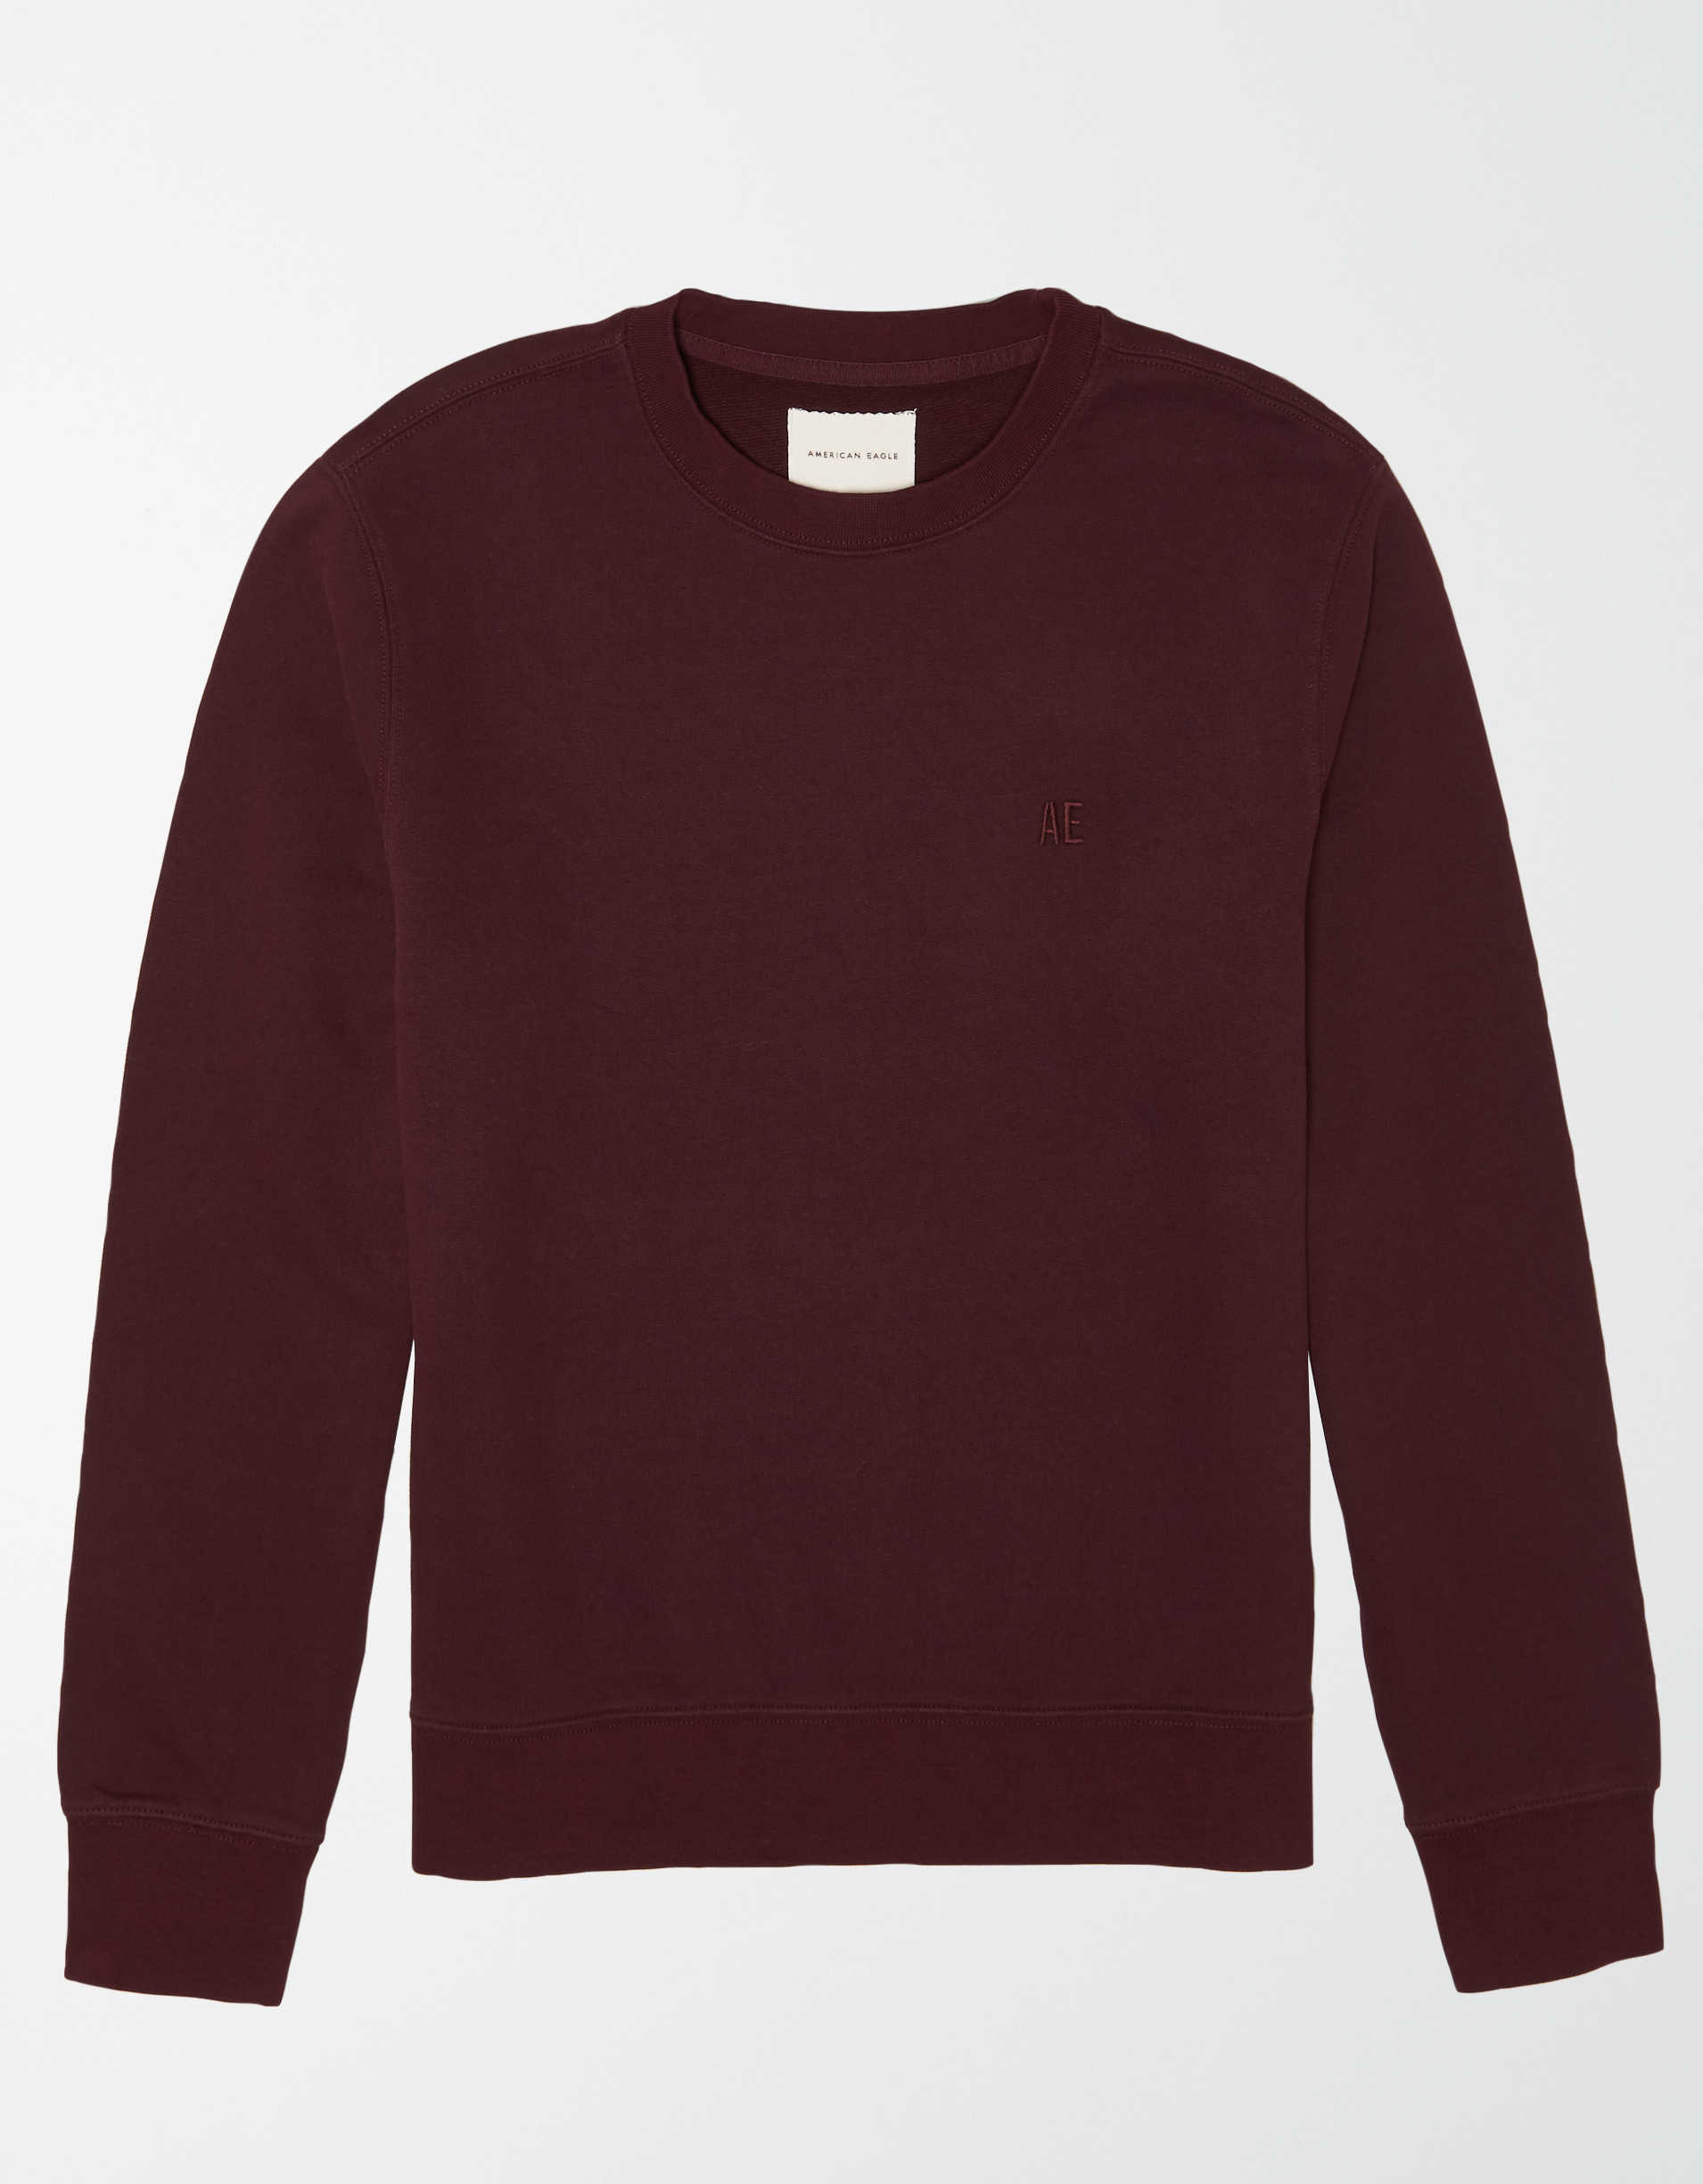 AE Terry Fleece Crewneck Sweatshirt